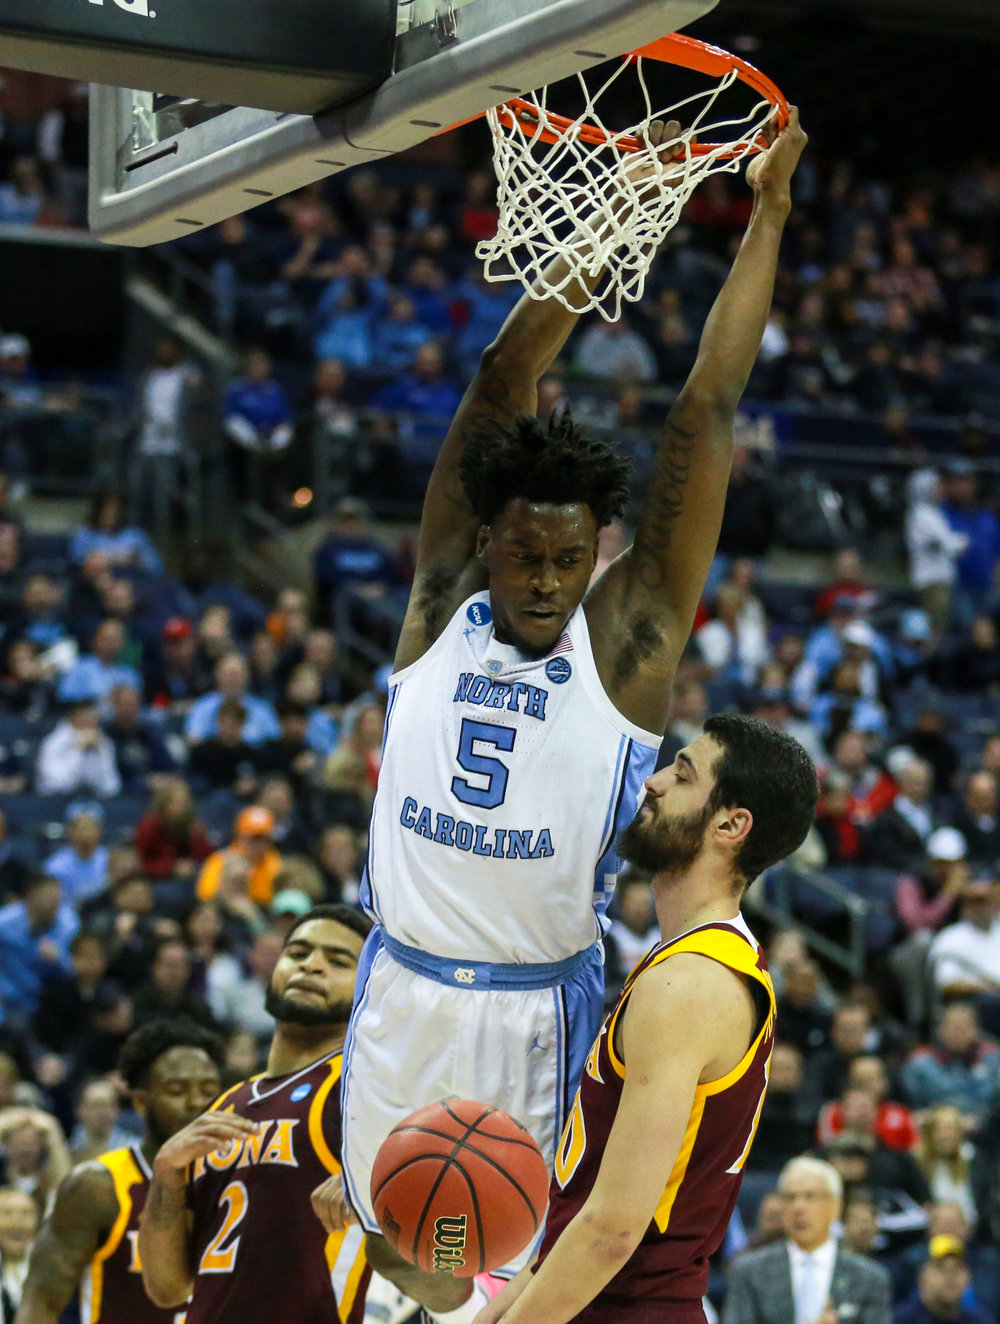 Nassir Little finishes off a dunk in the second half against Iona. The freshman forwards 19 points were the most for a UNC freshman in their NCAA tournament debut since Harrison Barnes' 24 points against LIU in 2011. | Photo by Alex Kormann